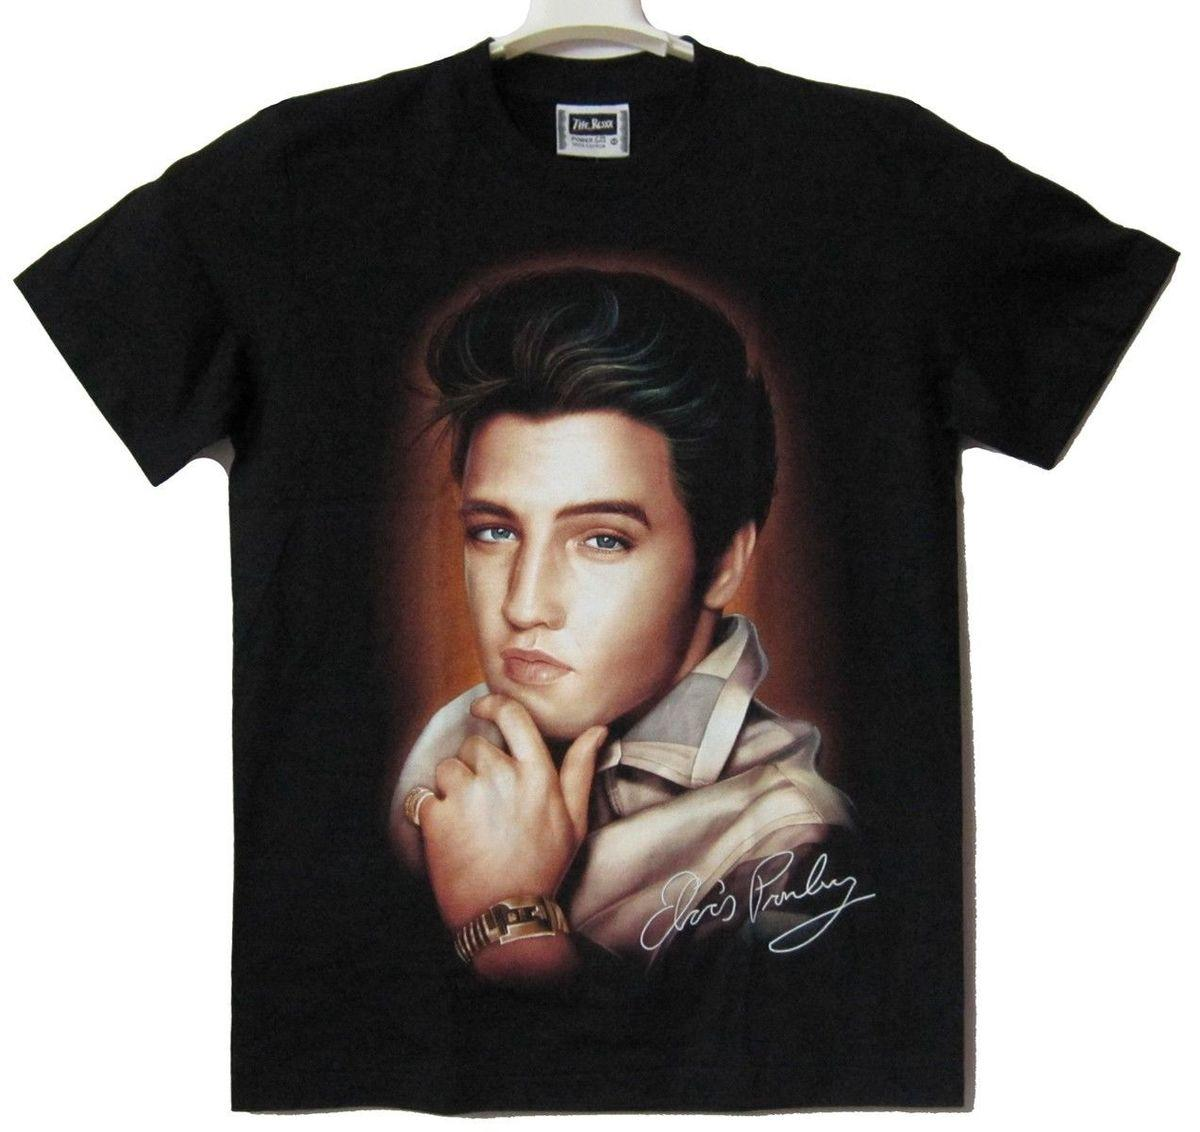 a1f4d77284a ELVIS PRESLEY The King T Shirt 100% Cotton New Size S Trump Sweat Sporter T  Shirt Fan T Shirt T Sh Fashion Shirt From Qz1685640834